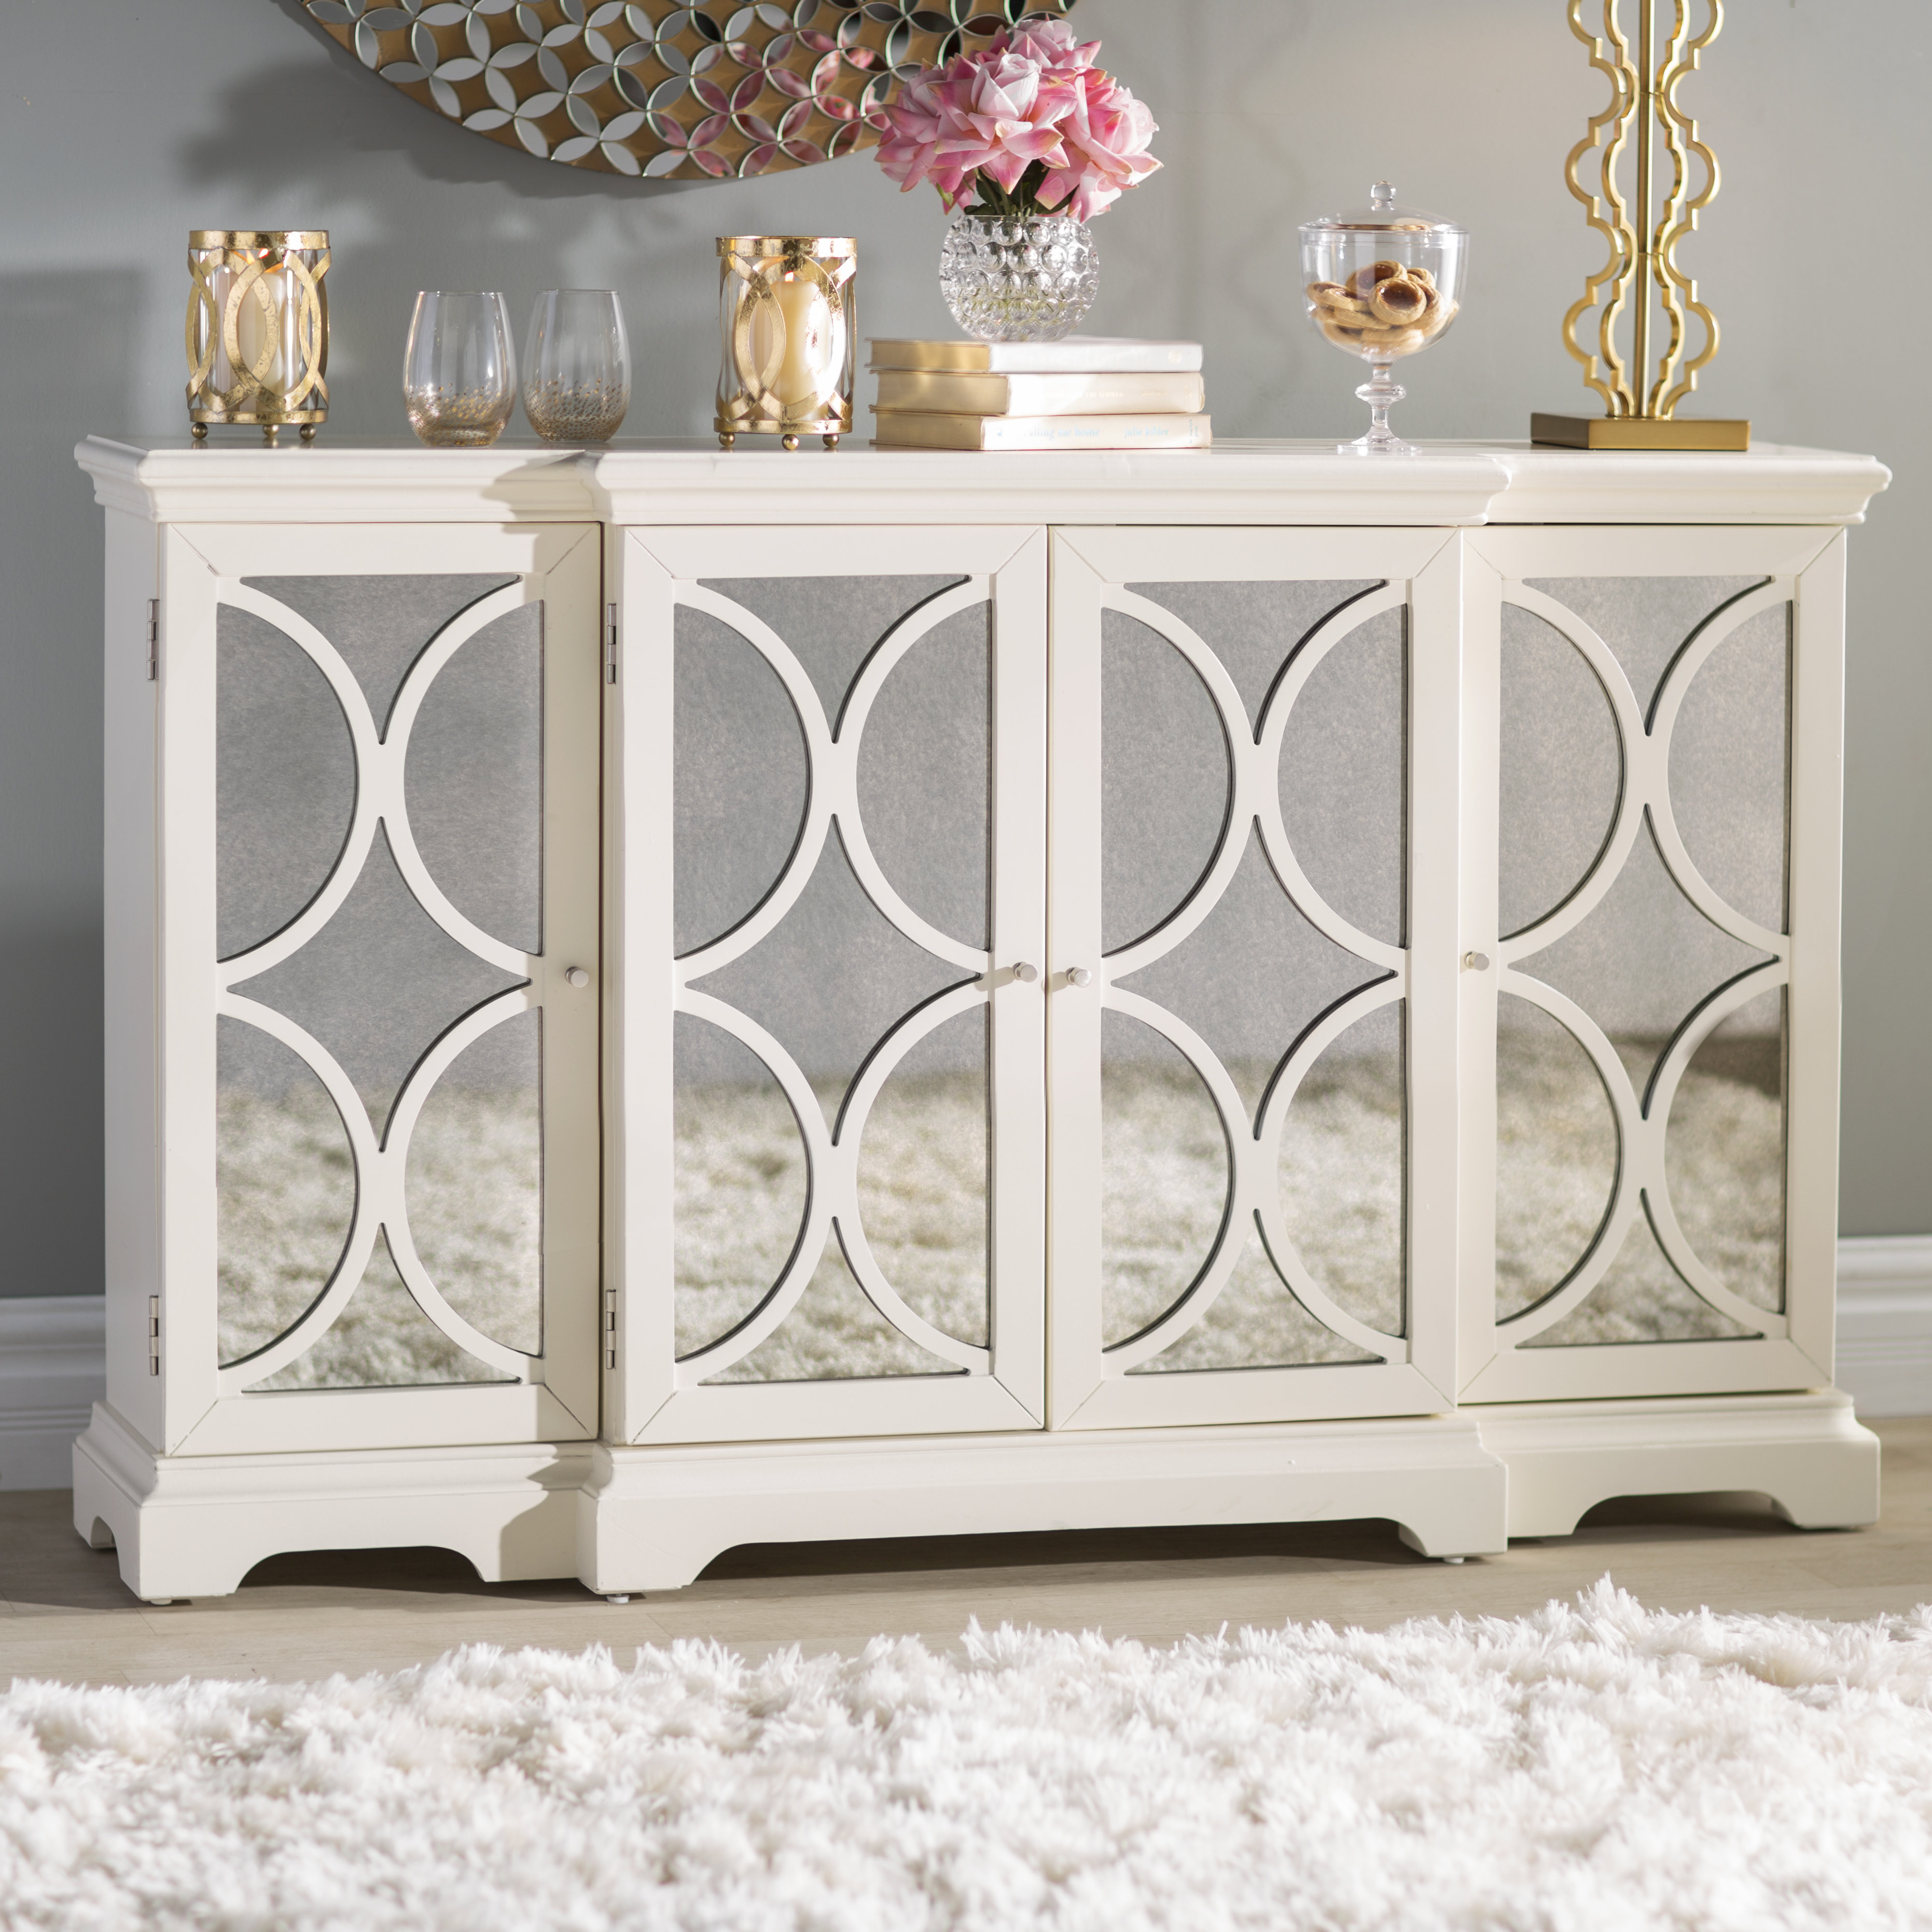 Narrow Credenza | Wayfair Pertaining To Latest Candace Door Credenzas (View 6 of 20)